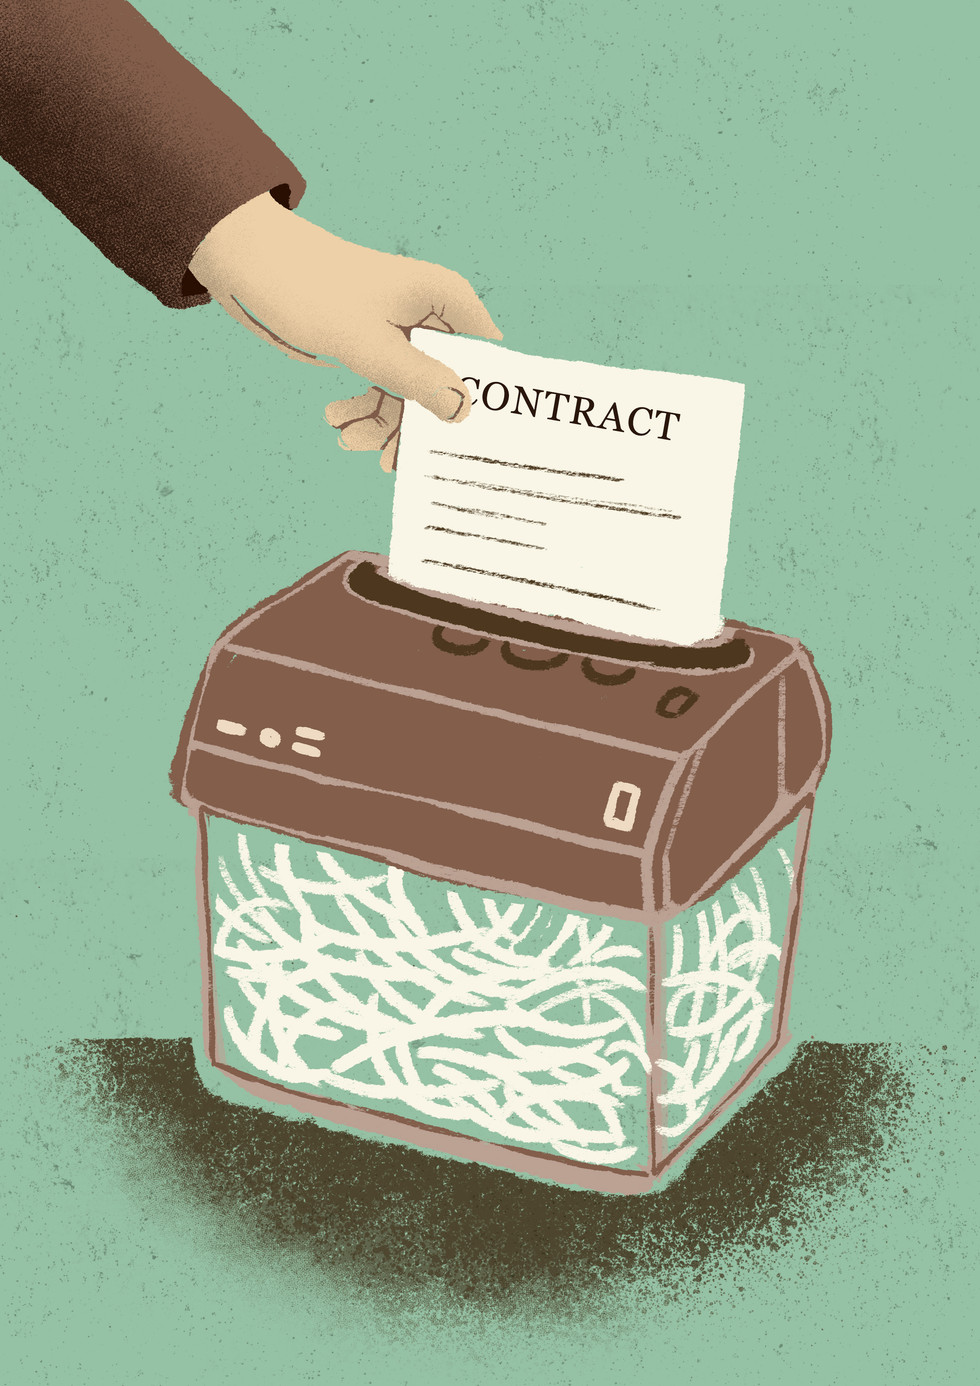 Destruction of contracts